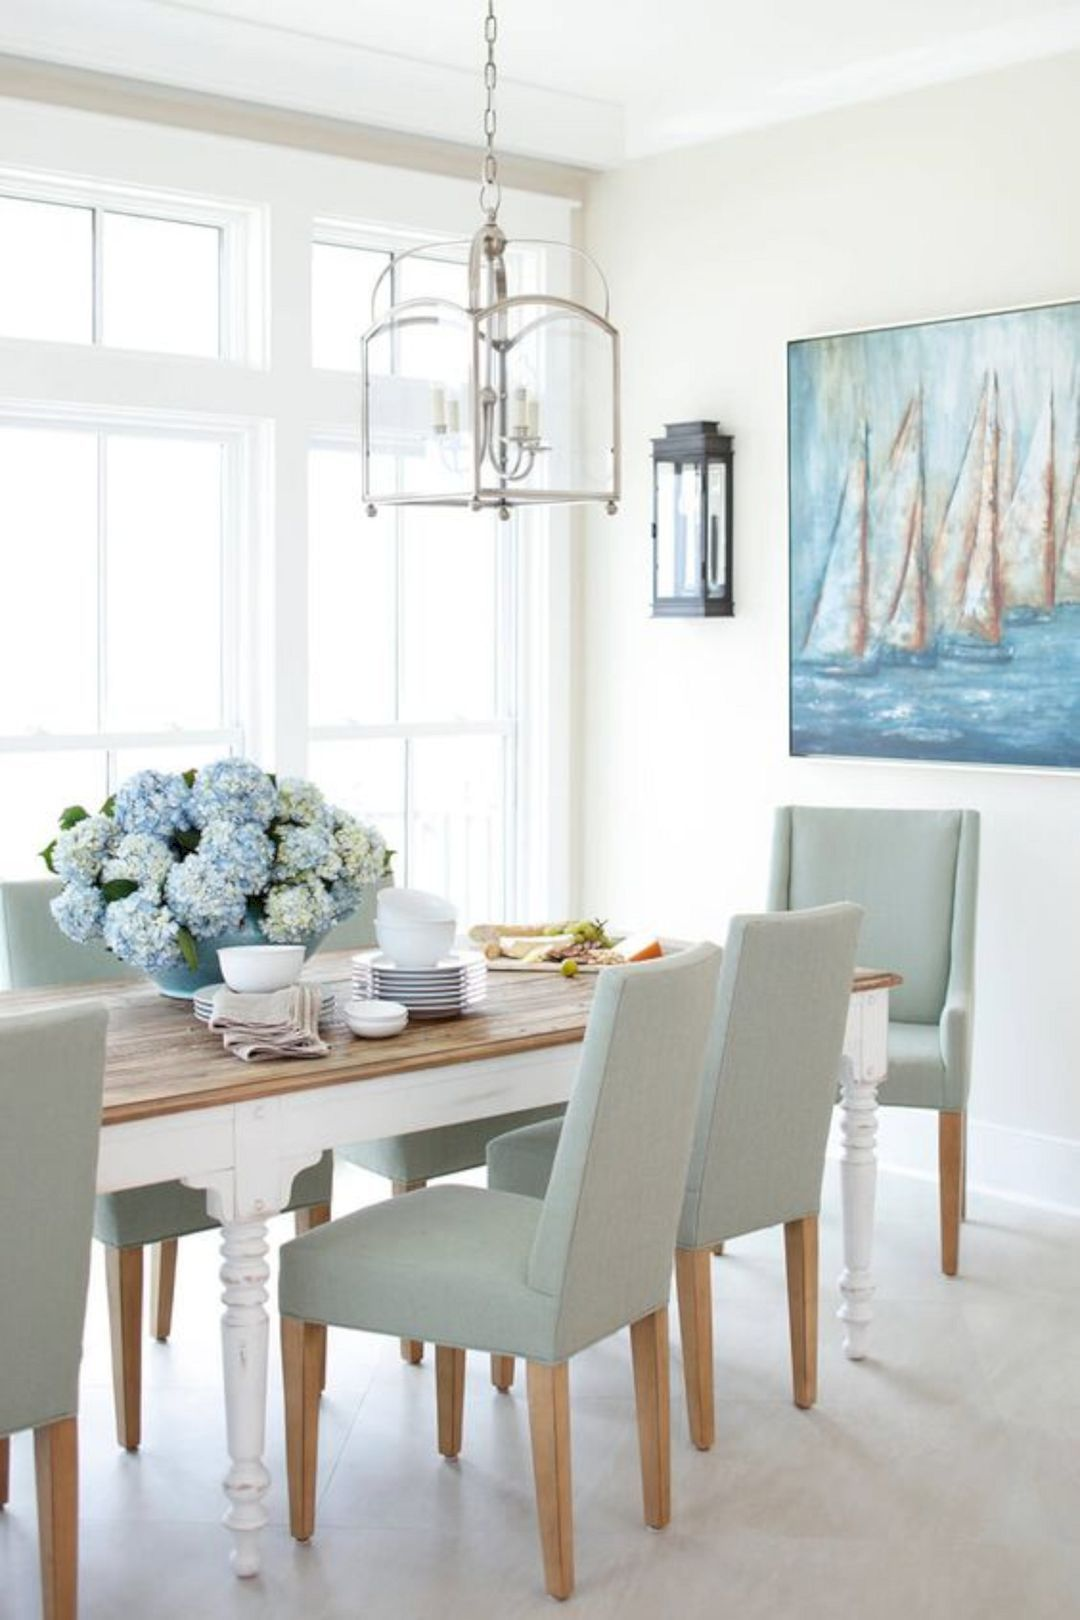 Beau 17 Coastal Room Decoration Ideas  Https://www.futuristarchitecture.com/34290 Coastal Room Decoration Ideas. Html